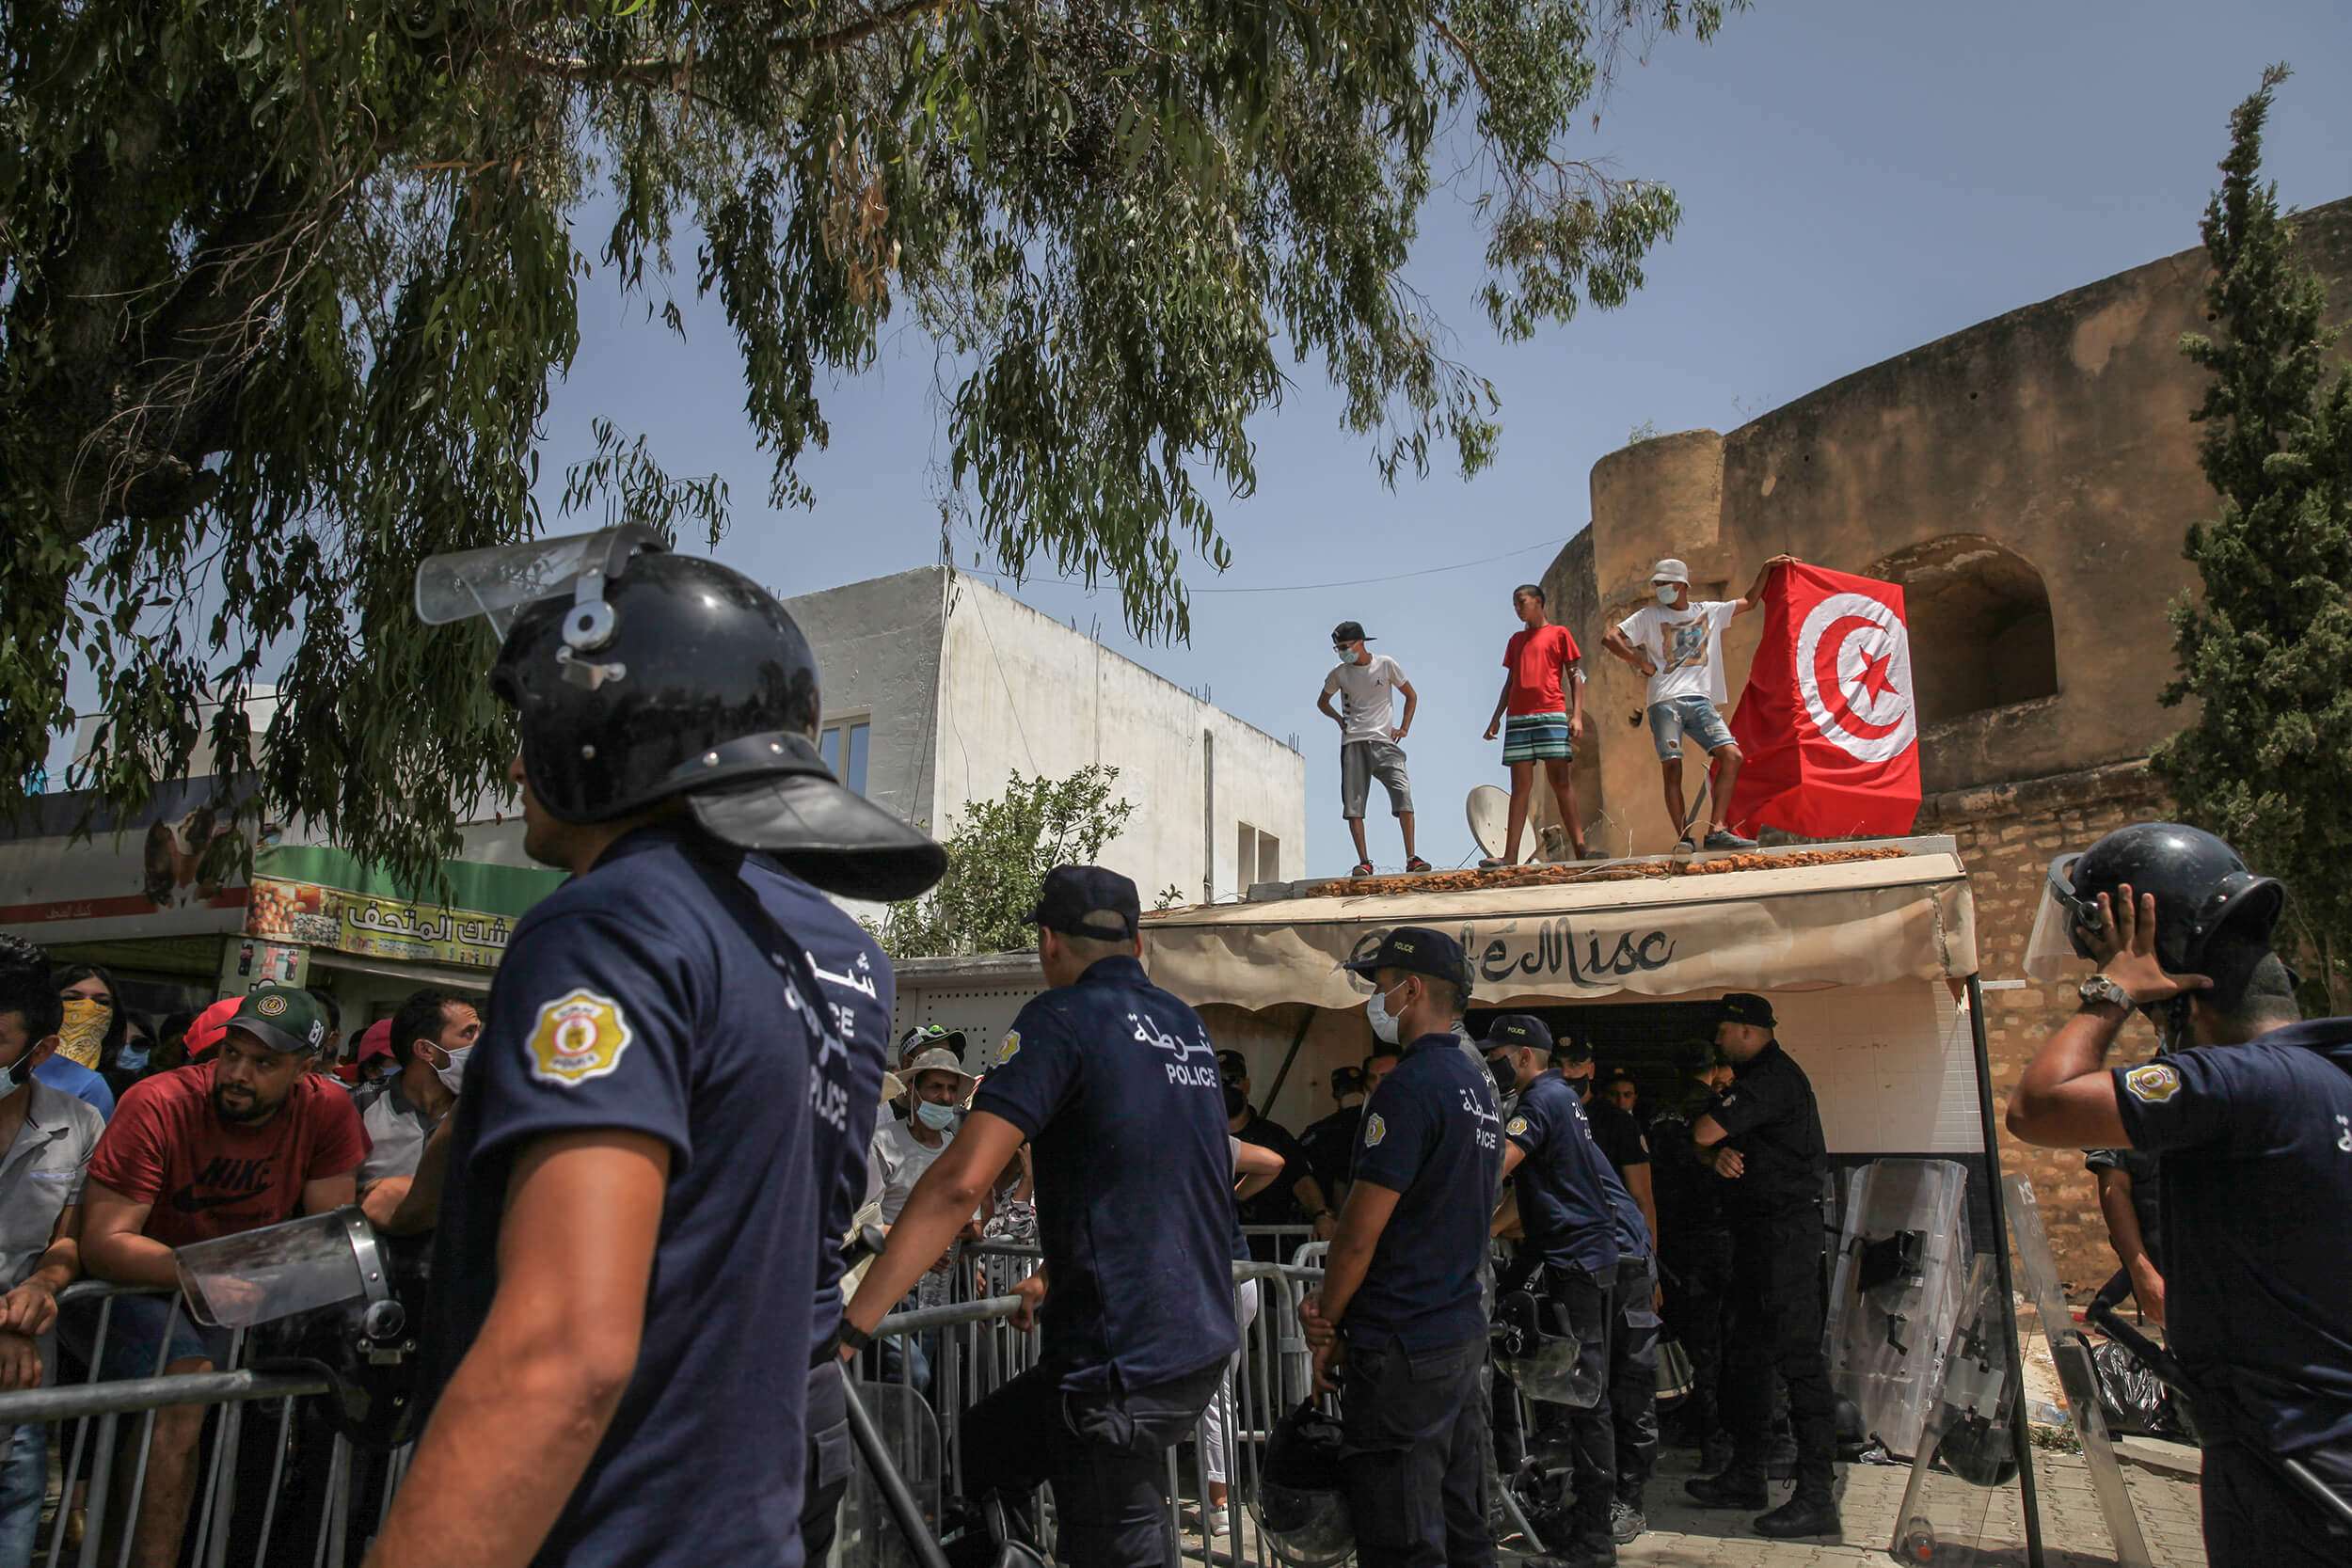 Uphold press freedoms in Tunisia